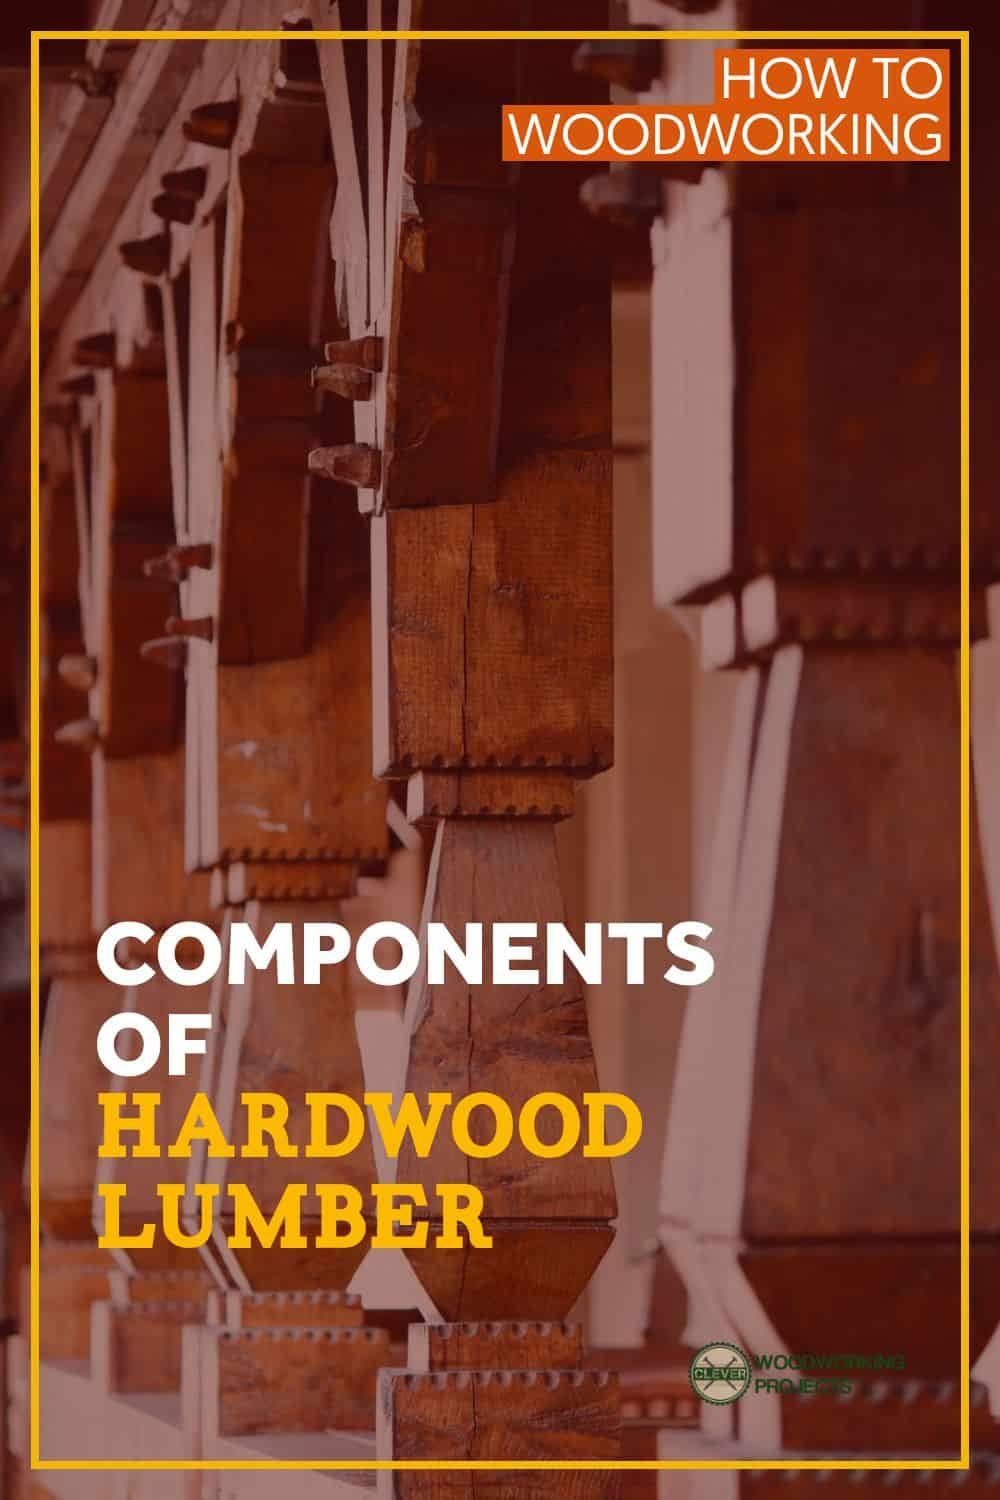 The Components of Hardwood Lumber